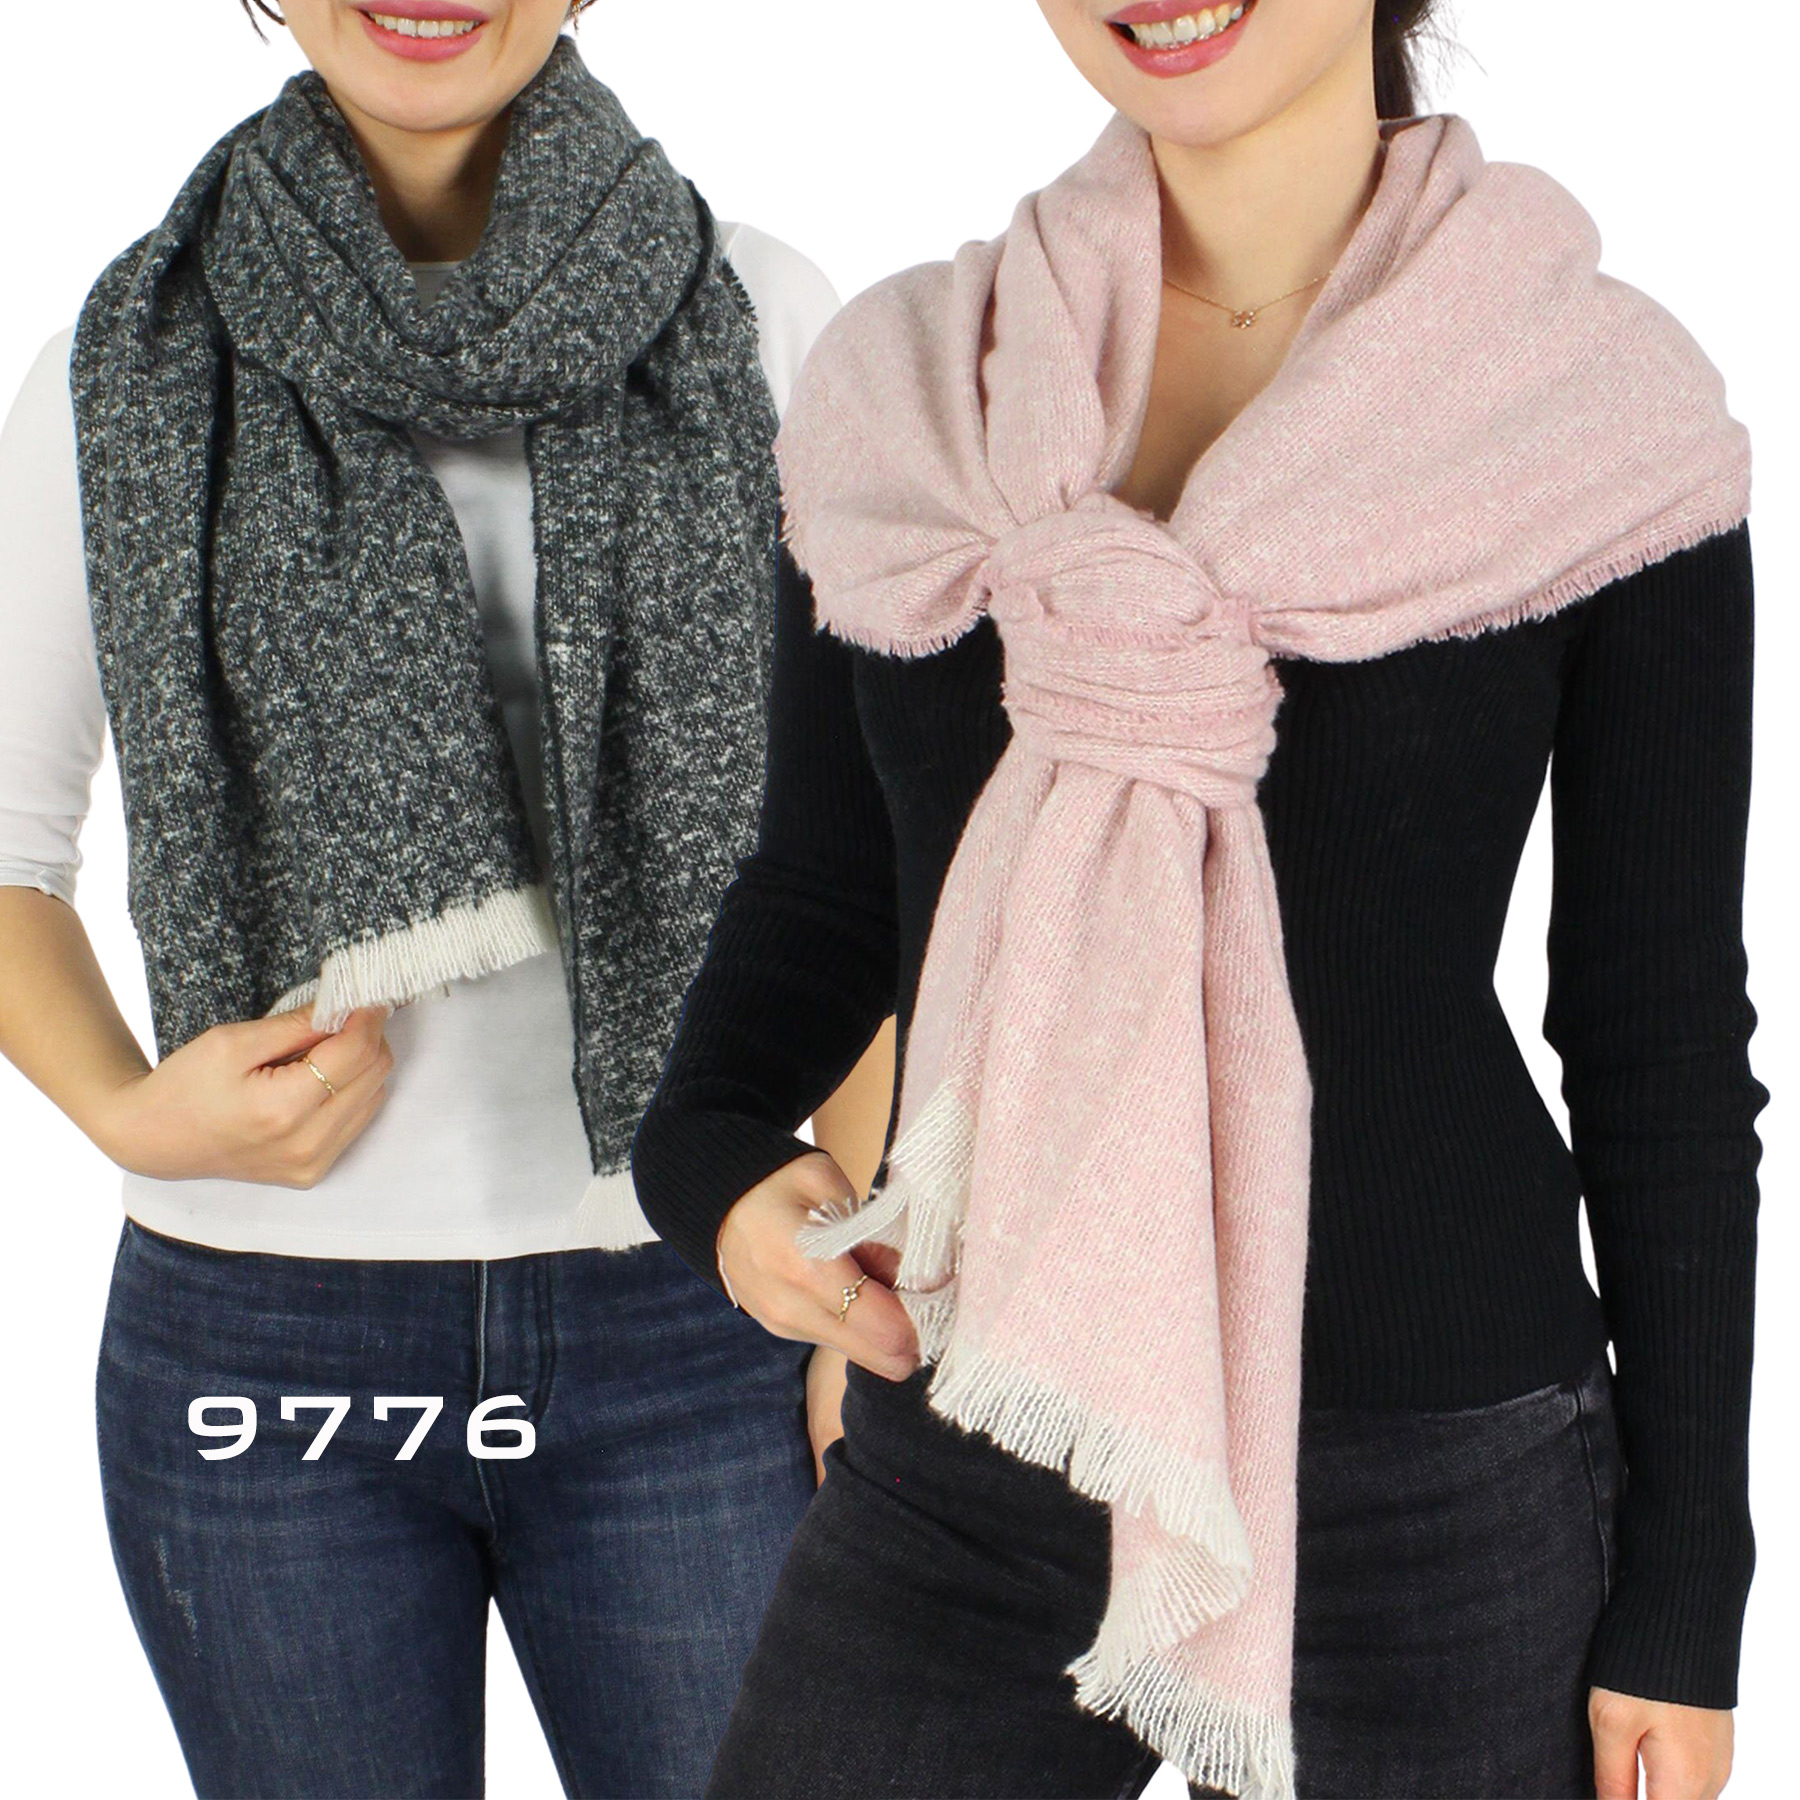 Town and Country Mottled Weave Scarves 9776